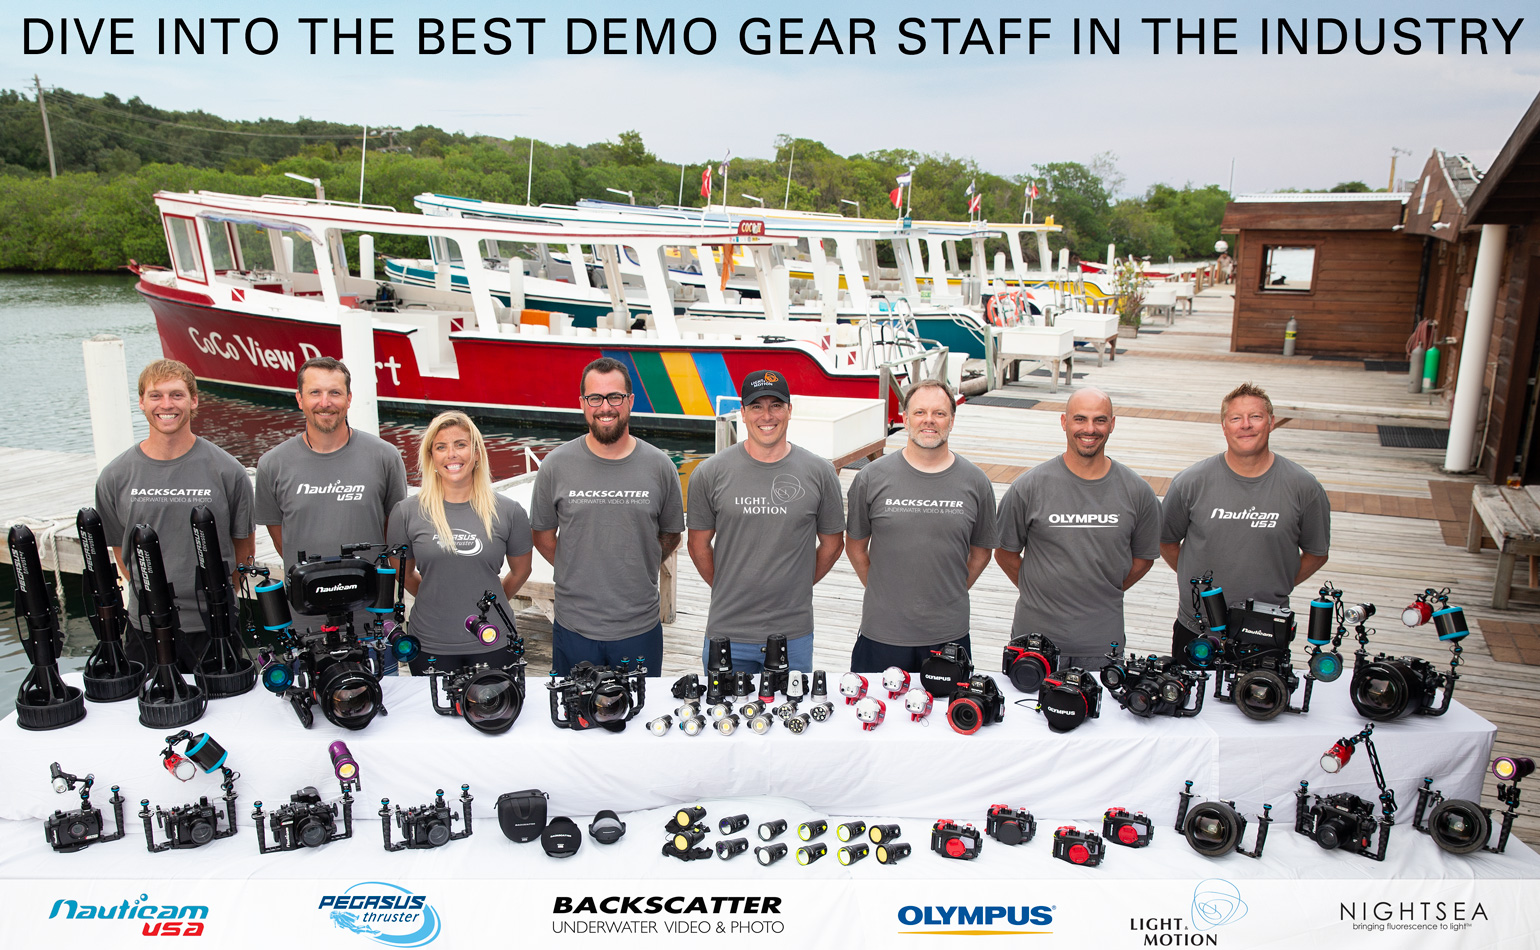 The Digitial Shootout Demo Gear and Tech Support Staff